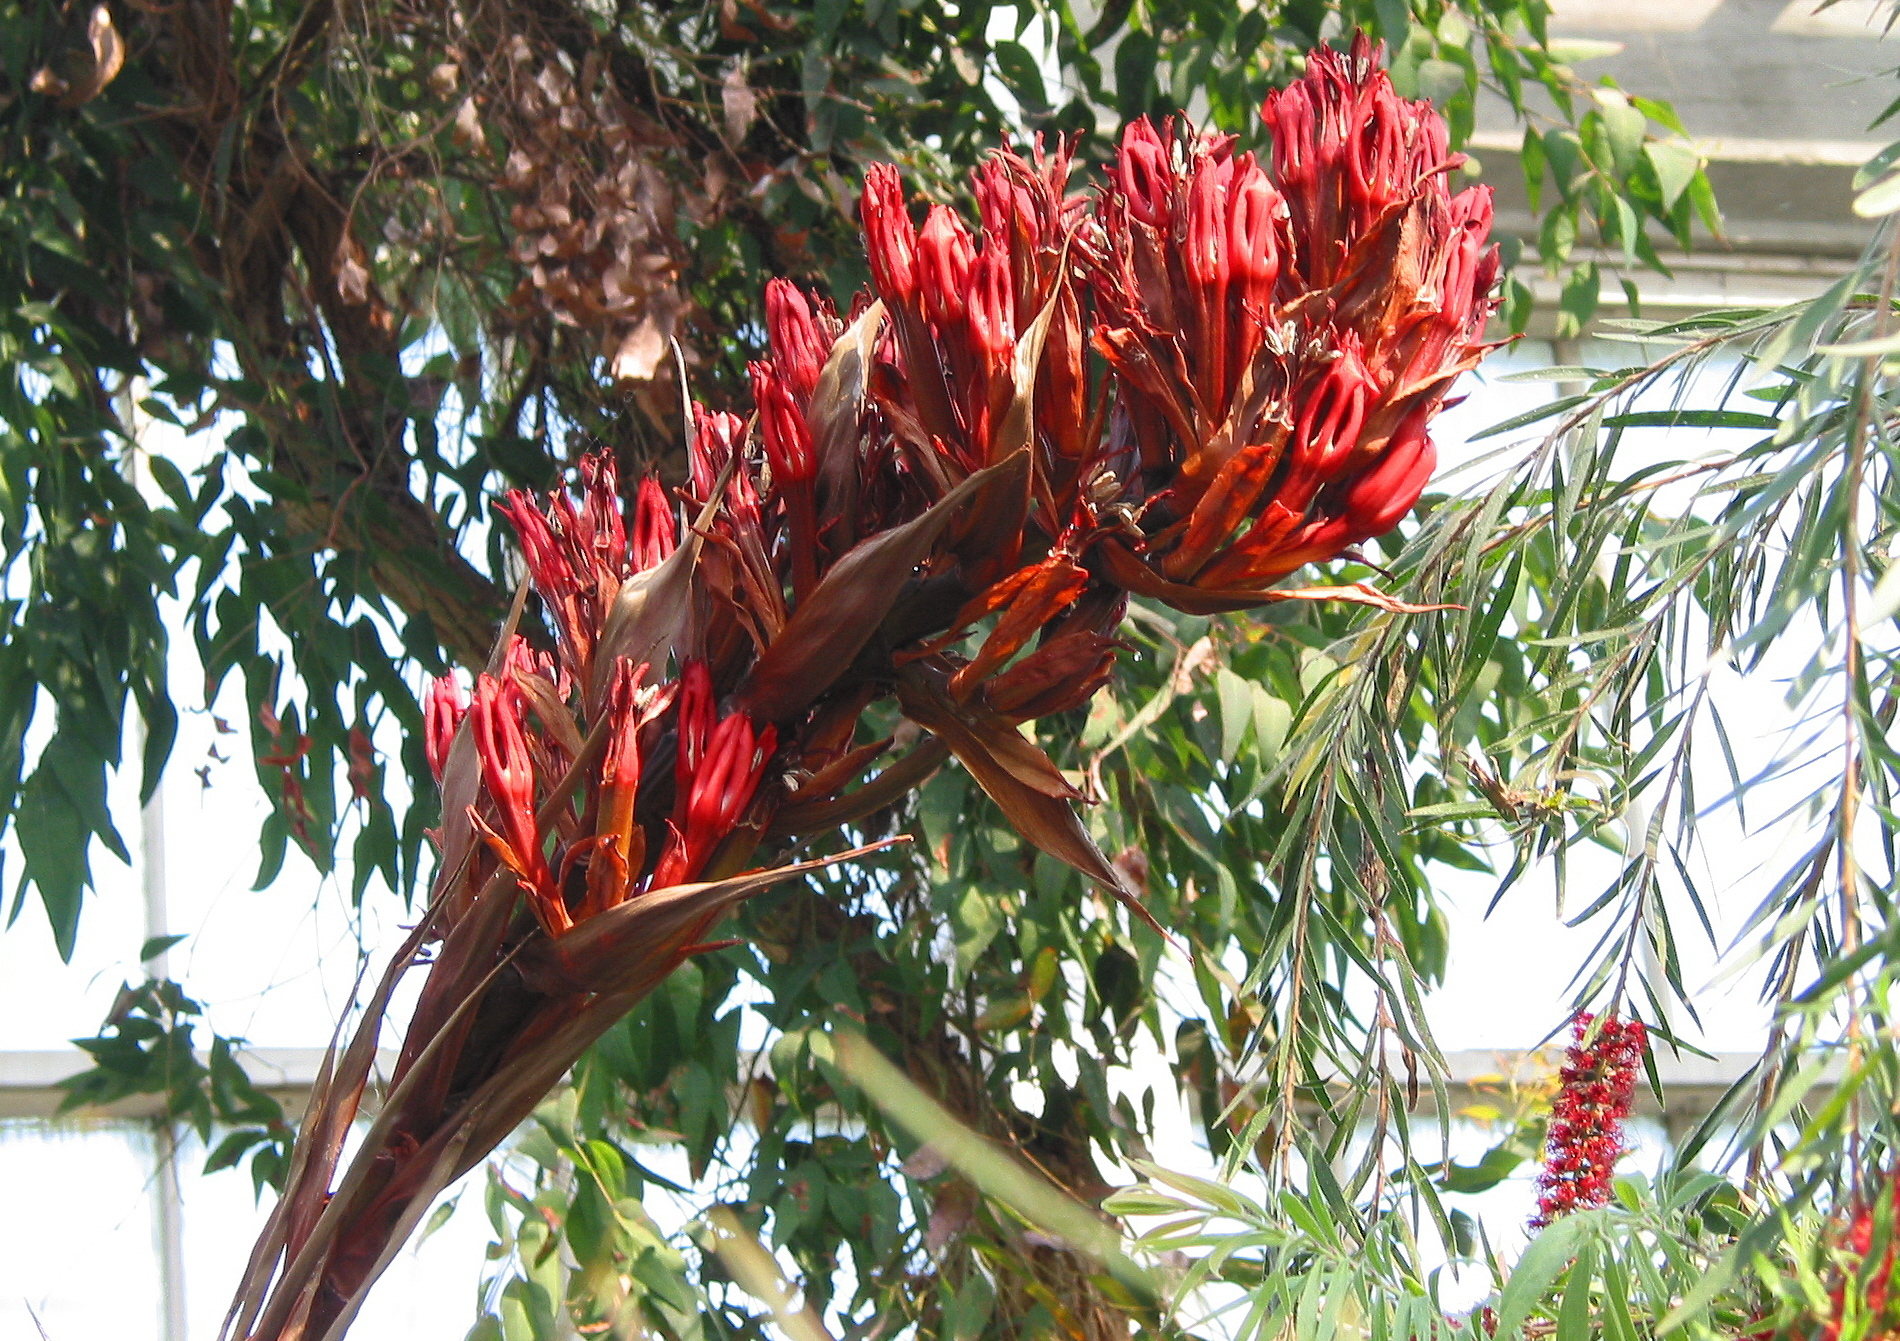 Image of giant spear lily